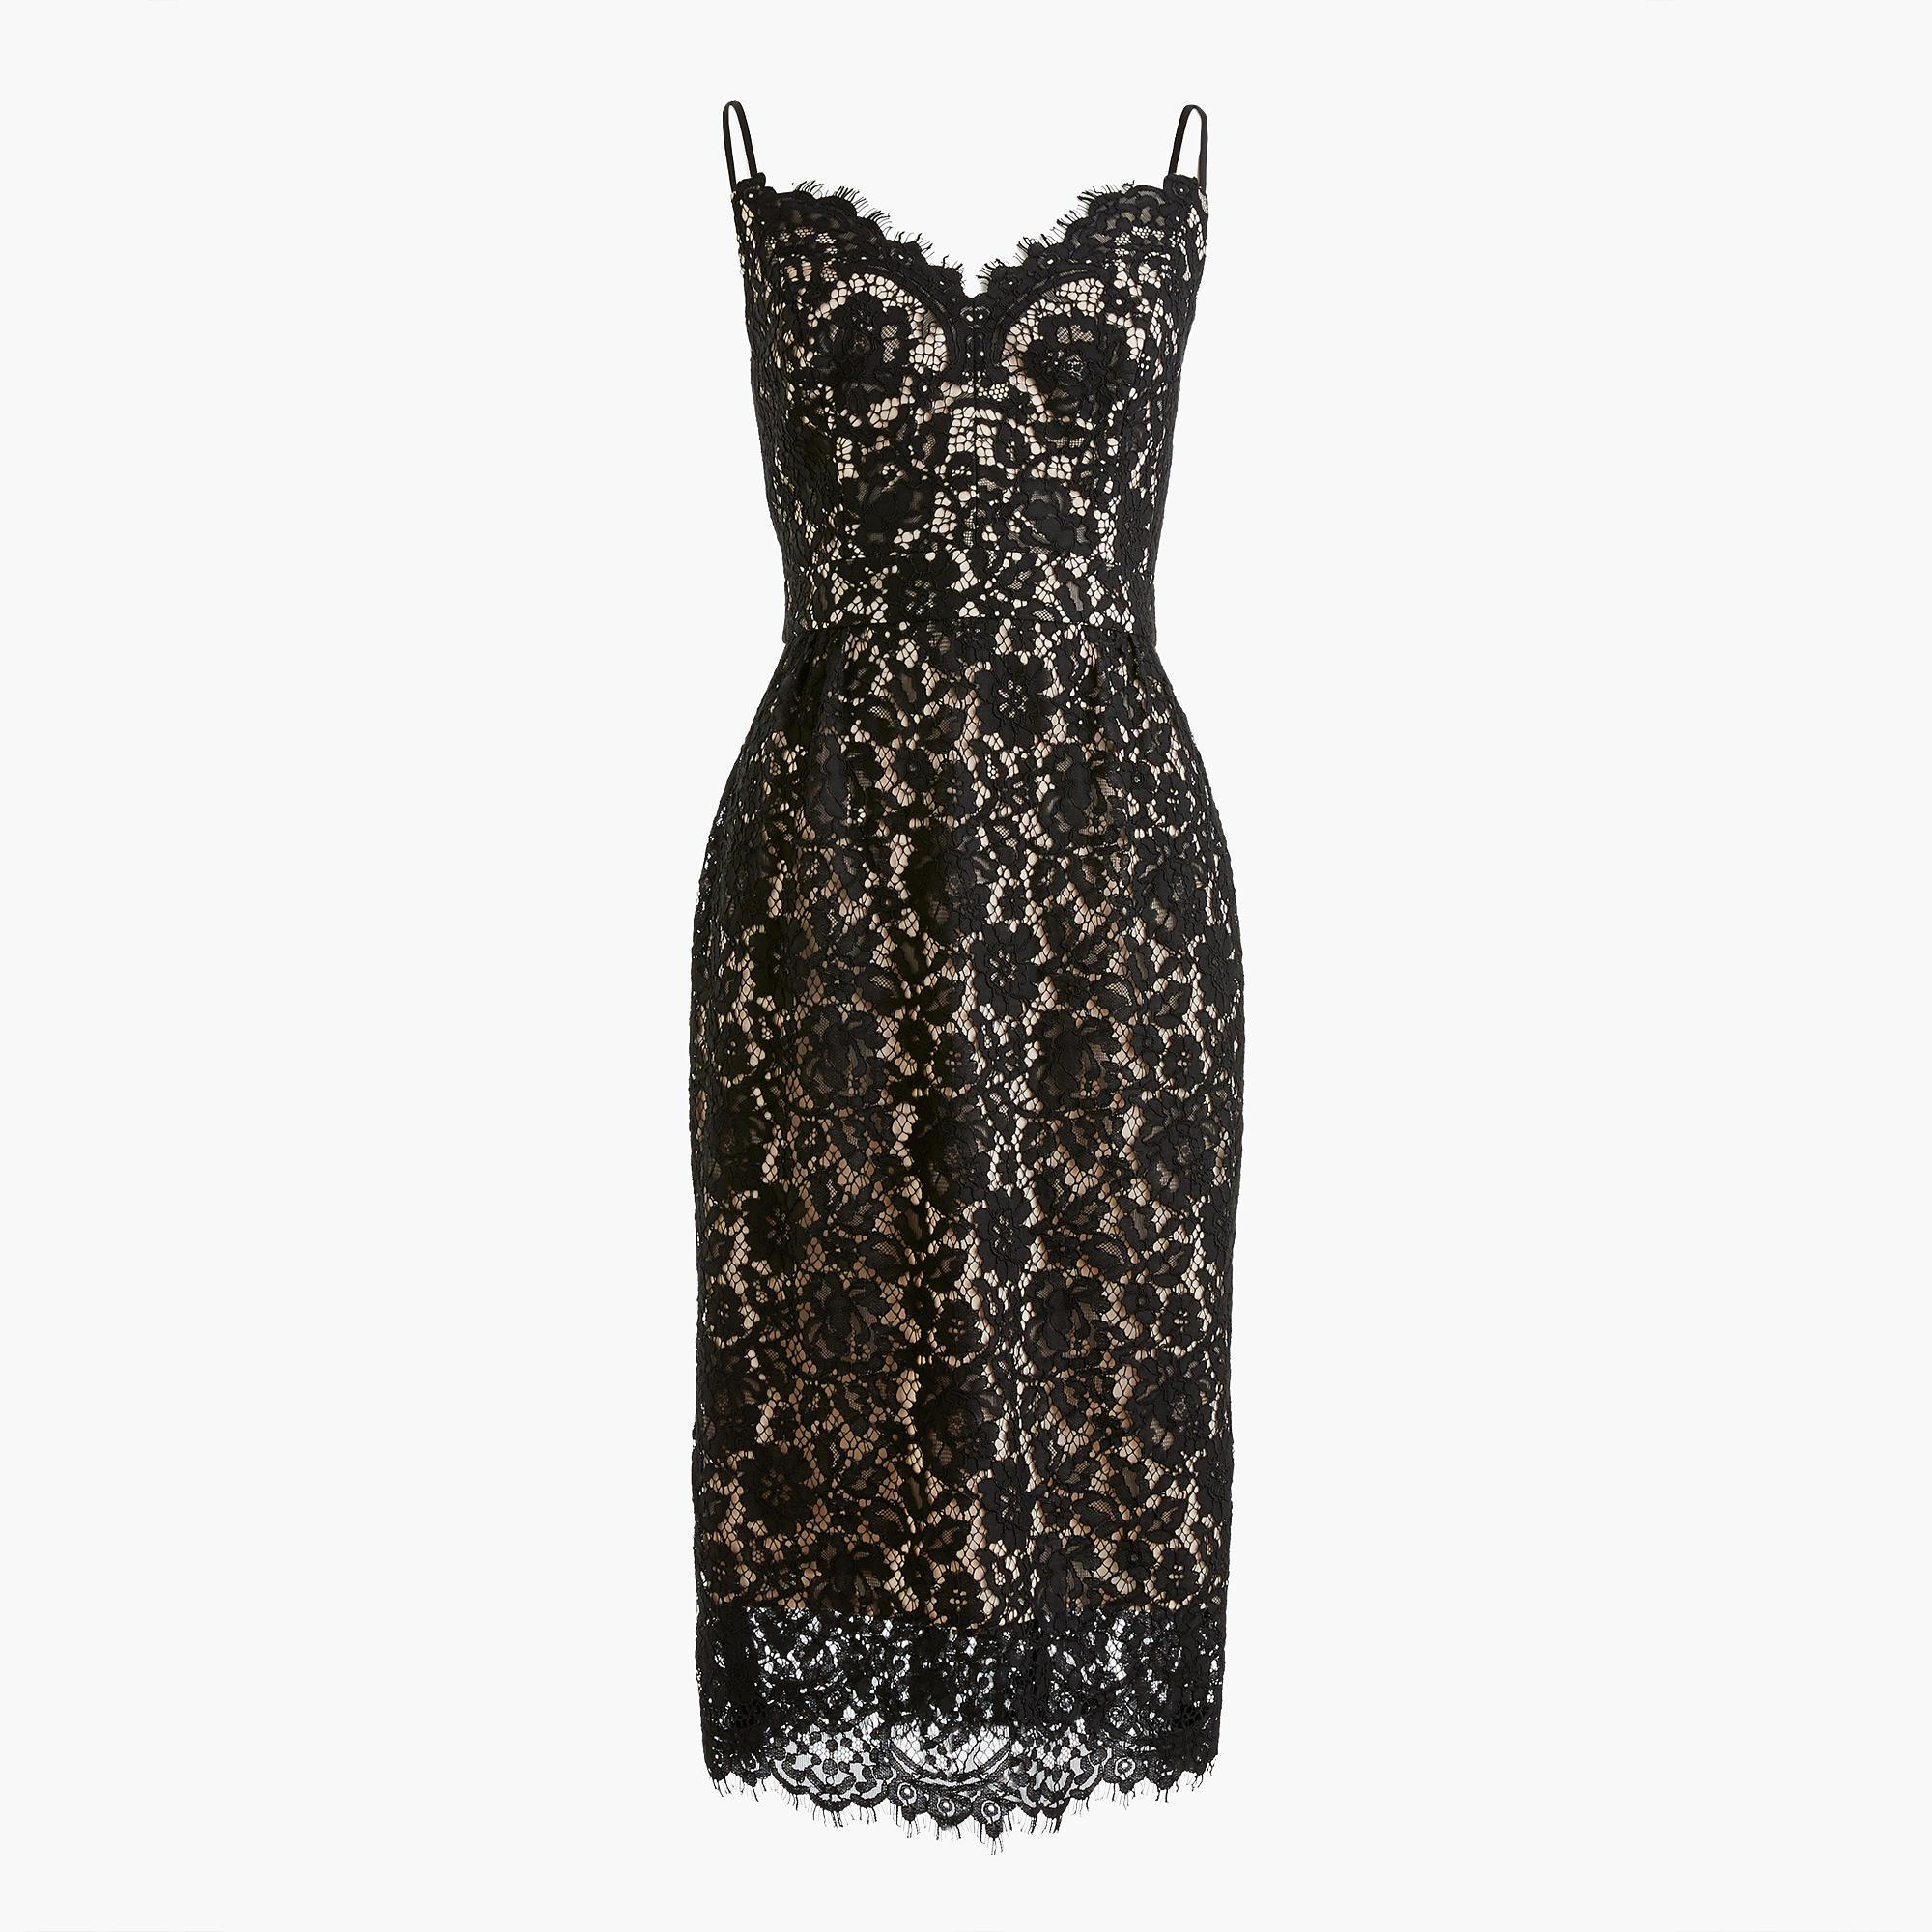 Lyst - J.Crew Perfect Party Dress in Black